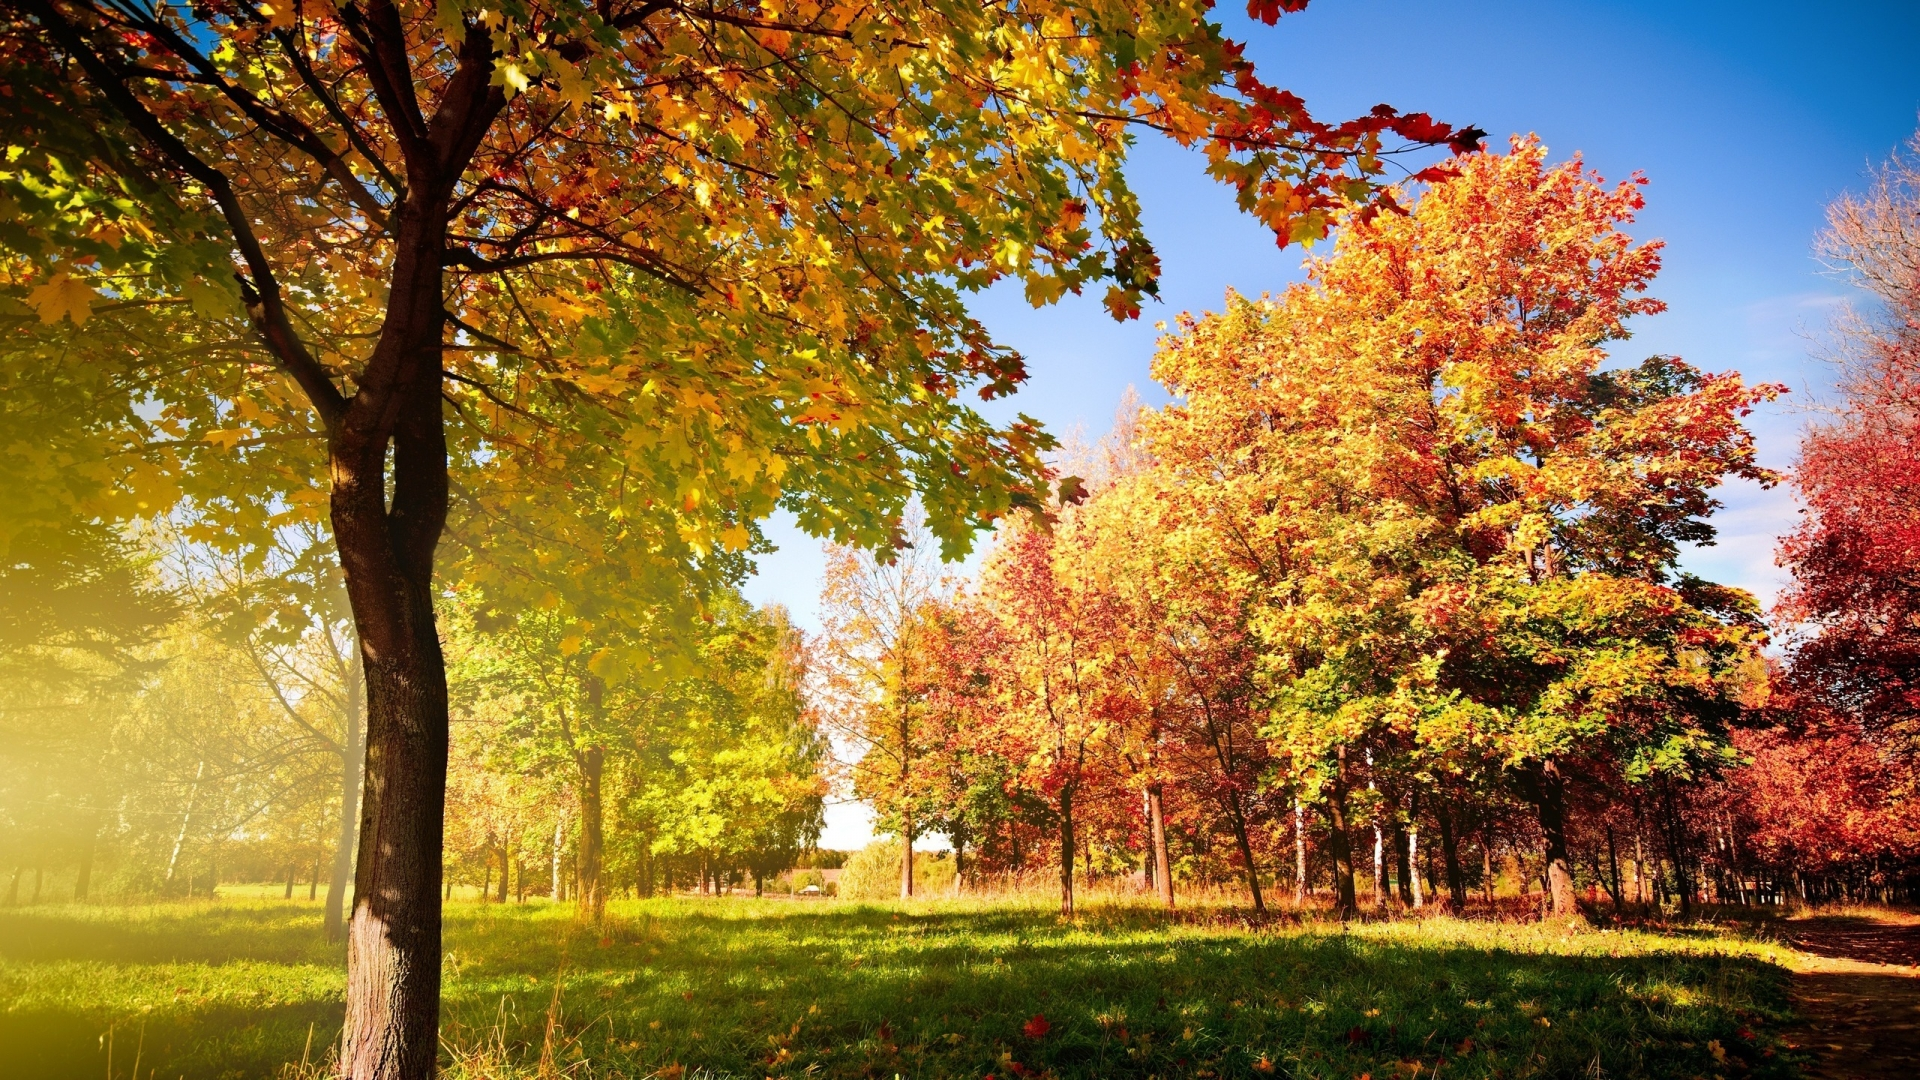 Colorful Autumn Landscape for 1920 x 1080 HDTV 1080p resolution